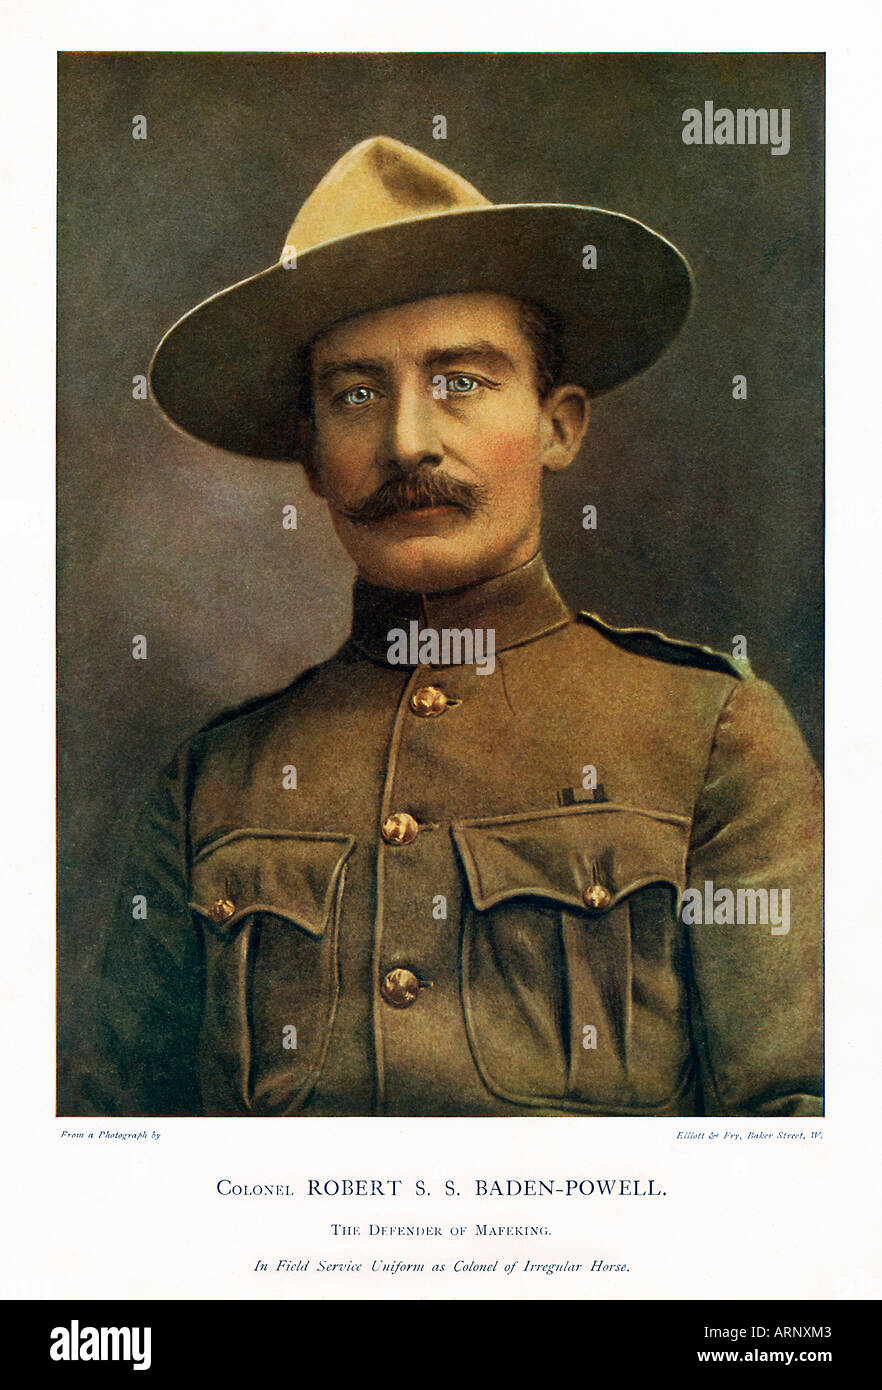 Robert Baden Powell The famous founder of the Scout movement and The Defender of Mafeking in the Boer War. Scouting for Boys - Stock Image